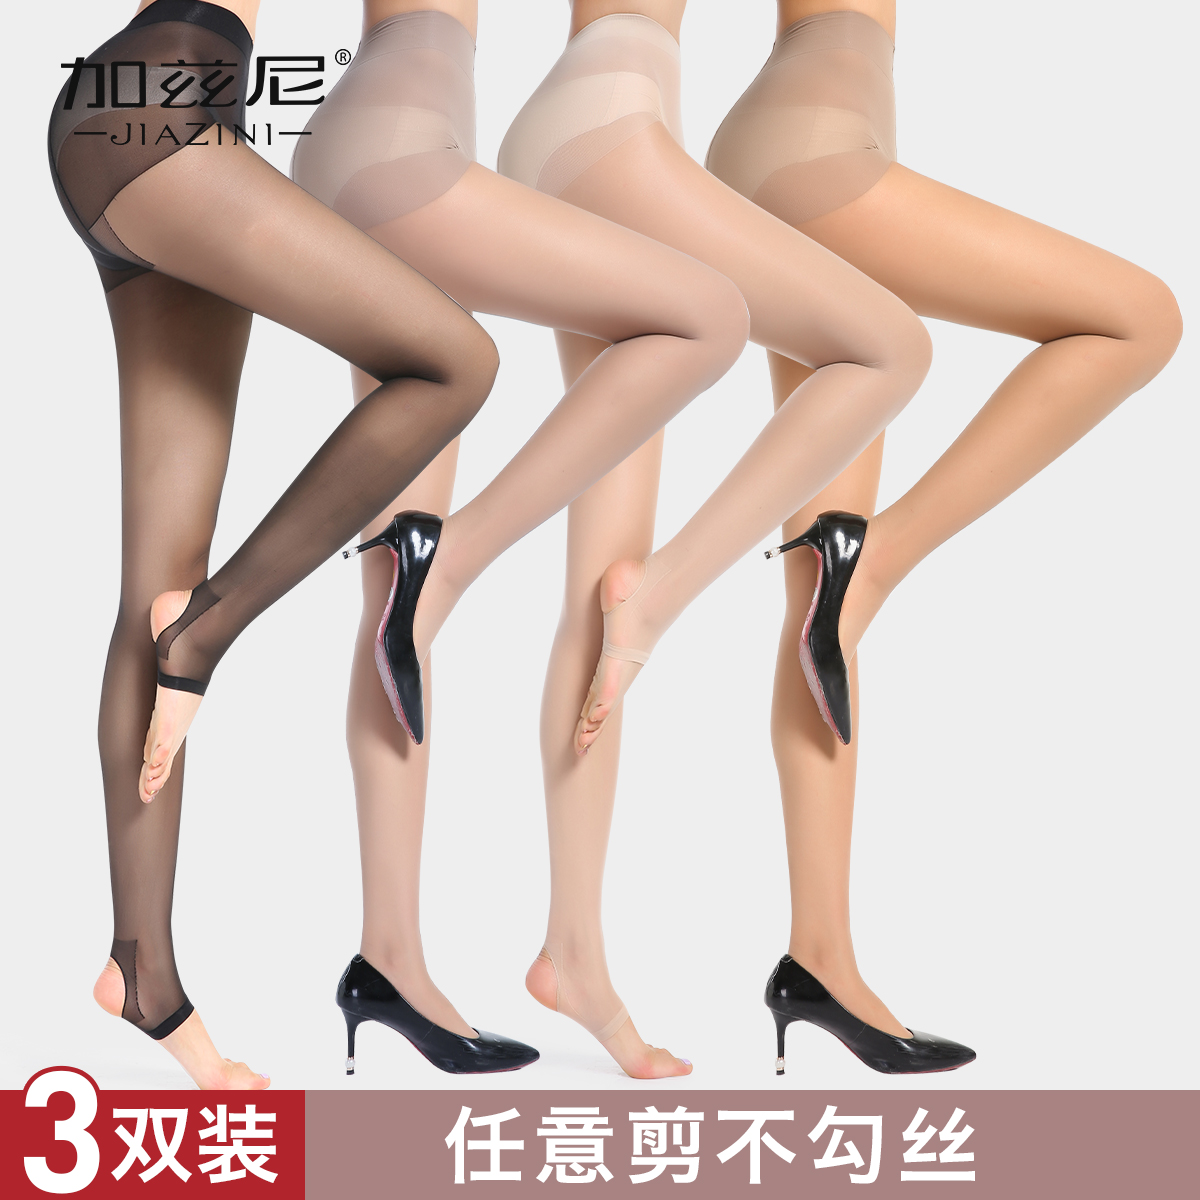 5c5f3ee2f Pineapple socks arbitrary cut stockings female summer pantyhose anti-hook  silk thin section sexy meat color female socks pantyhose